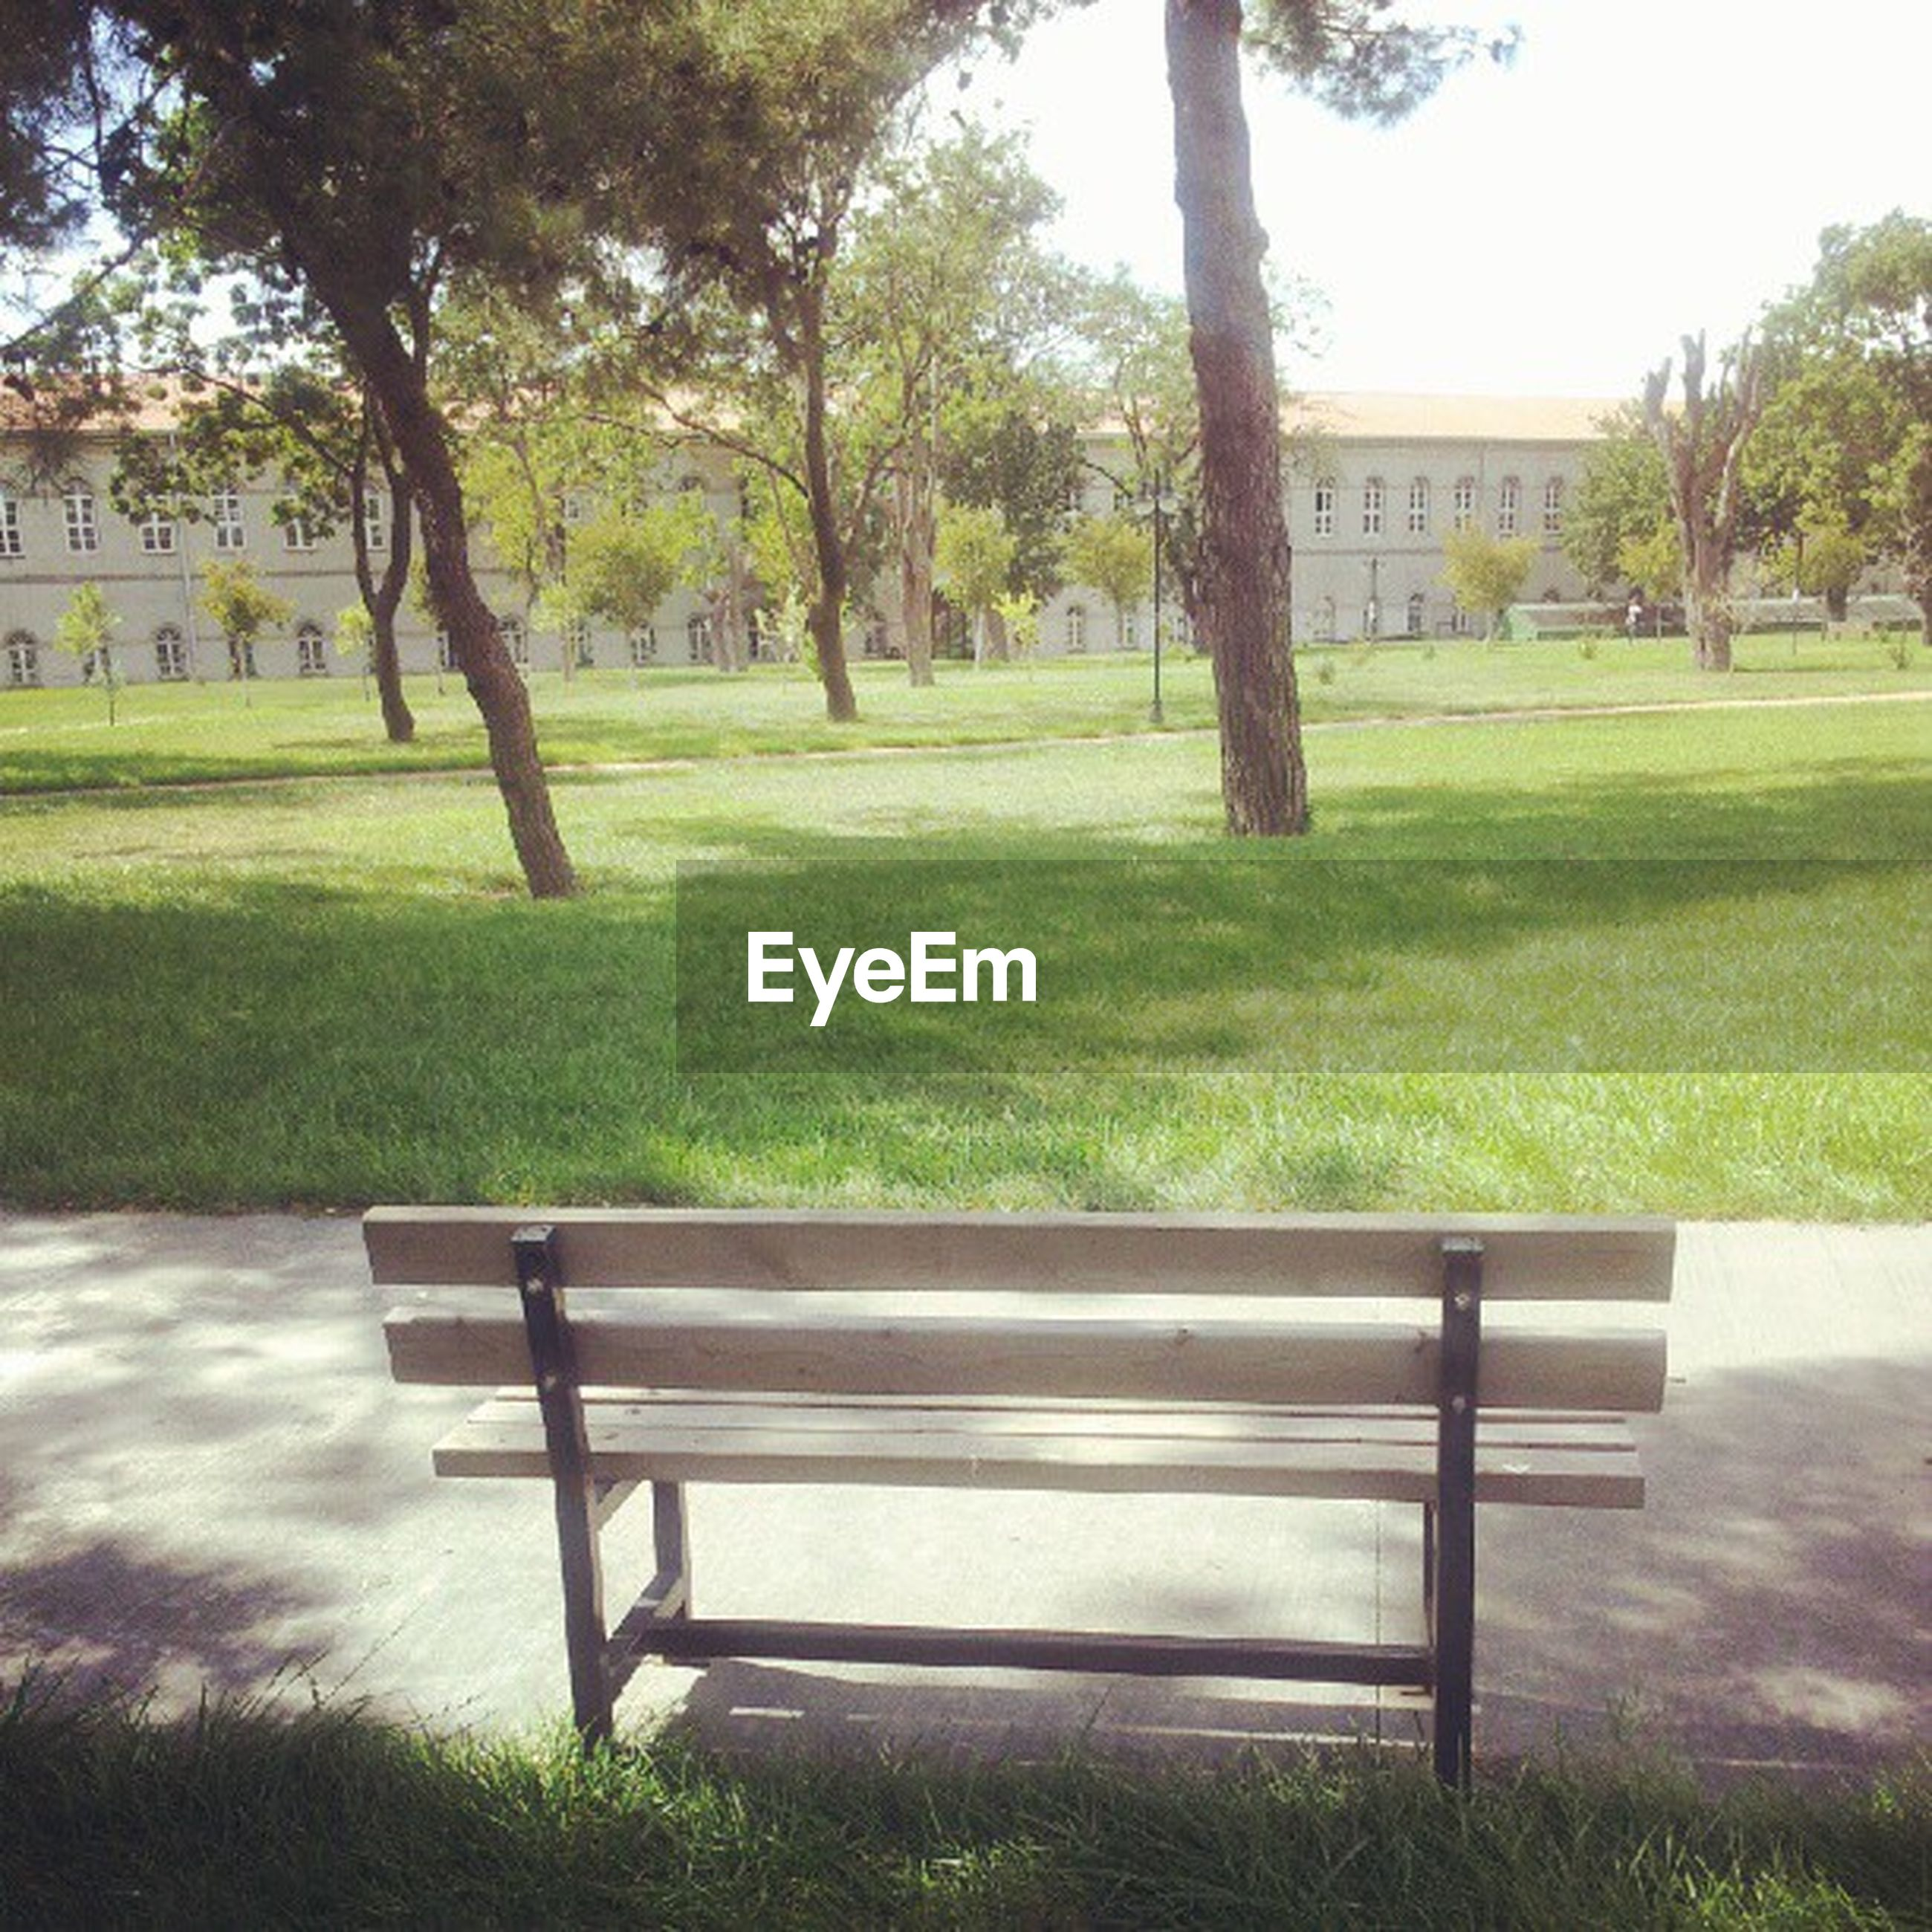 grass, bench, tree, empty, green color, lawn, park - man made space, park bench, absence, chair, tranquility, field, grassy, growth, park, tranquil scene, nature, seat, sunlight, shadow